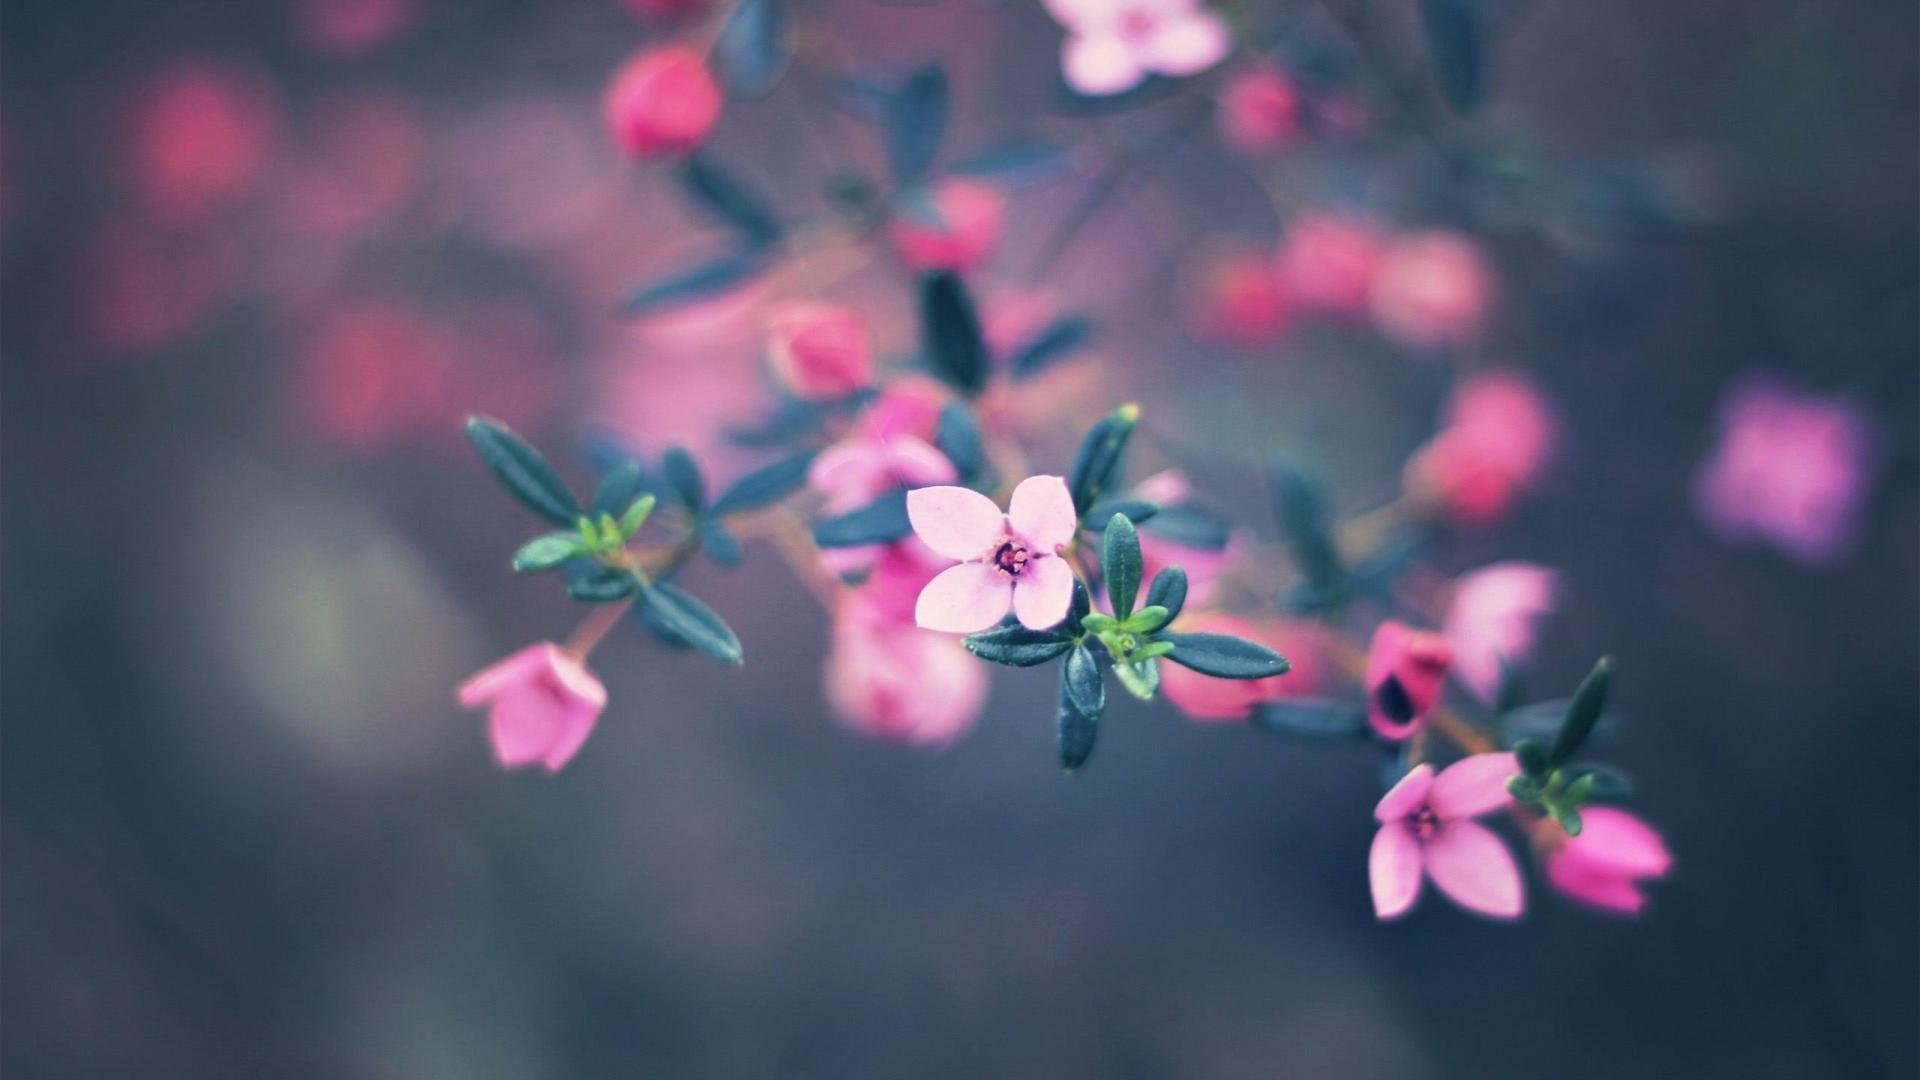 Cute pink flower photography wallpaper | (87228)